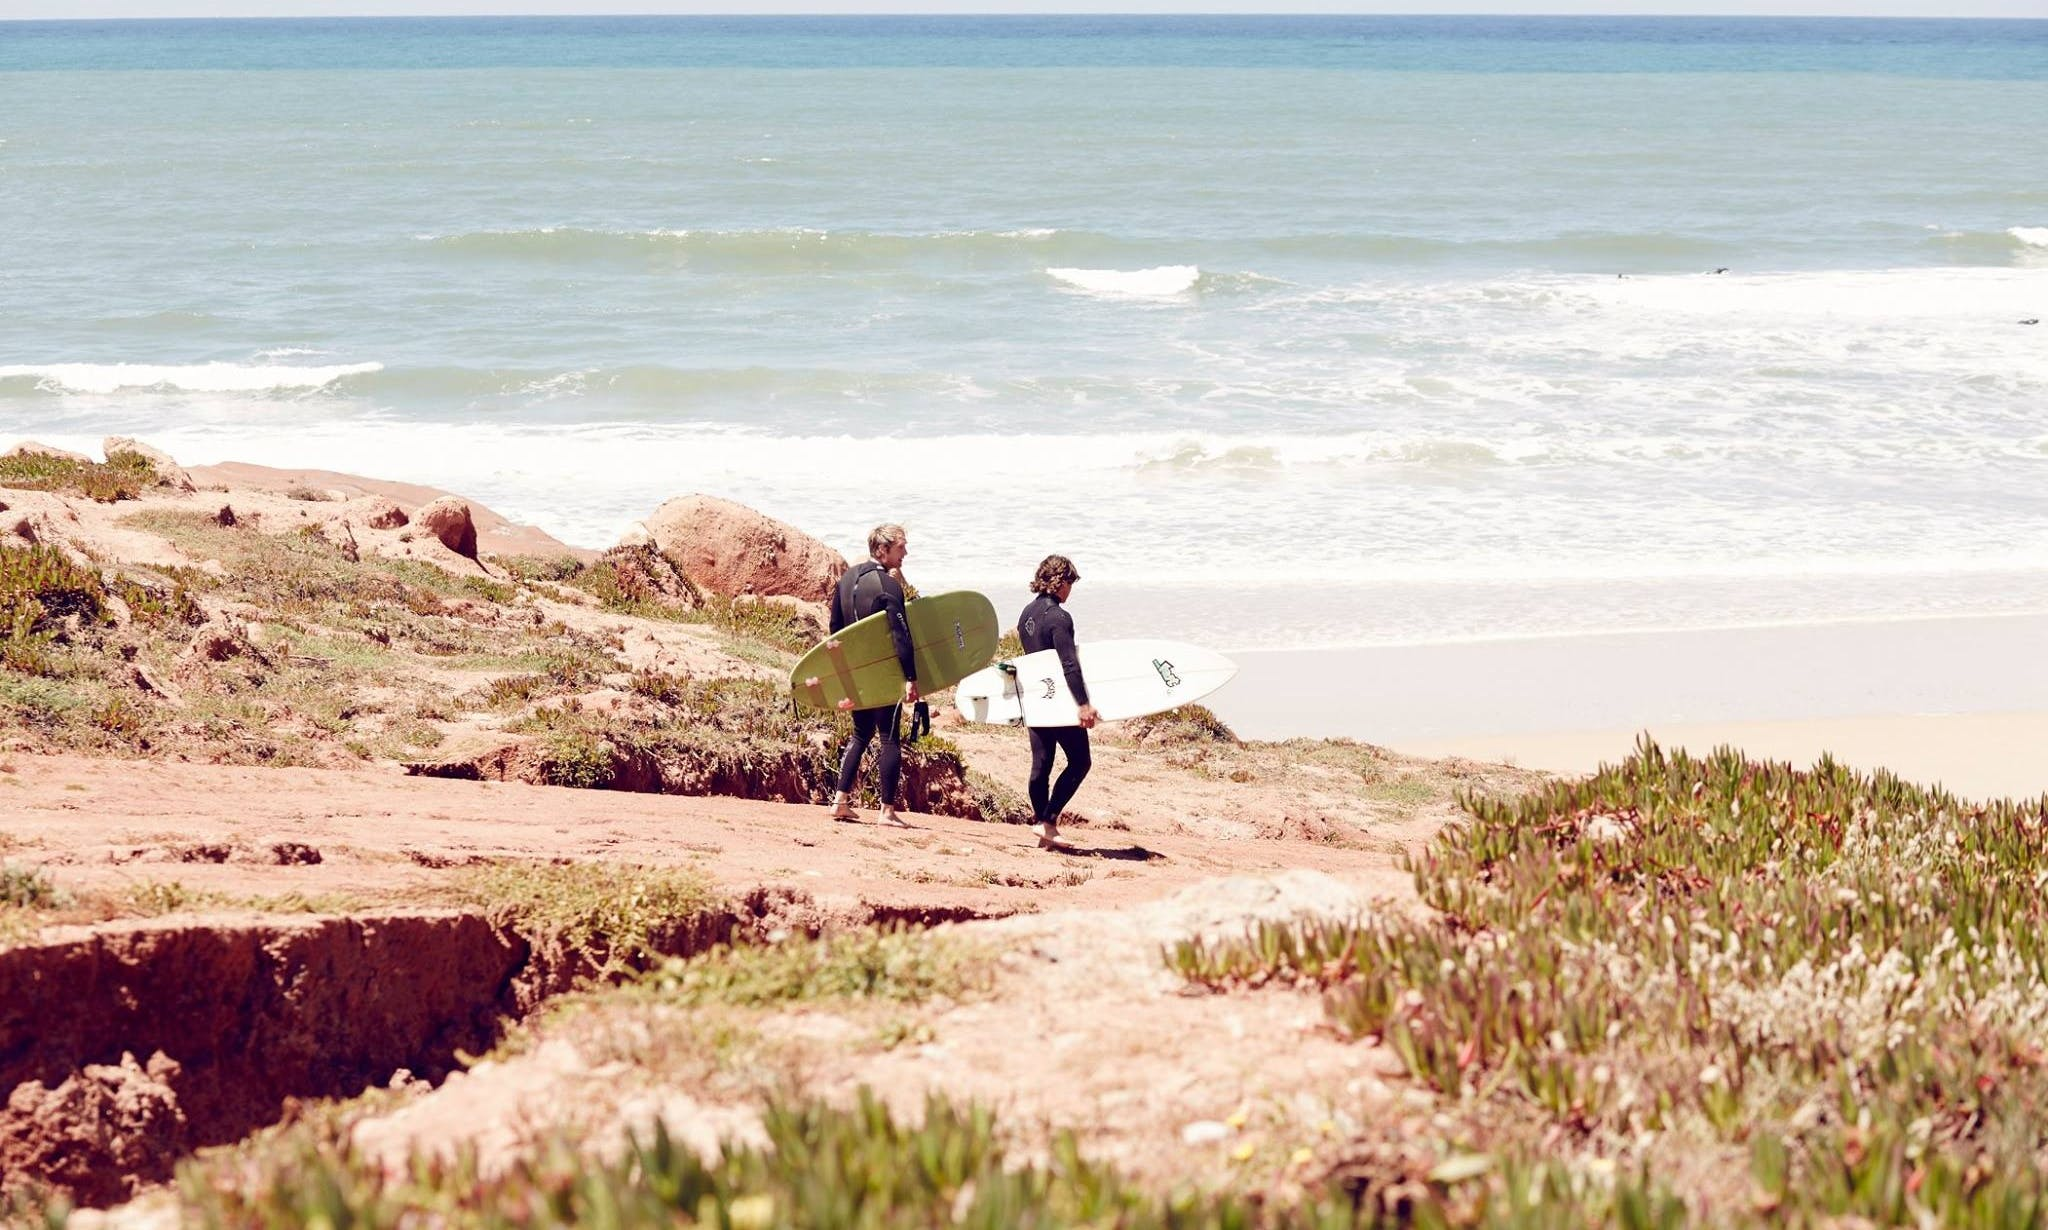 7 Nights Stay Surf Lessons with Professional Instructor in Lourinhã, Portugal